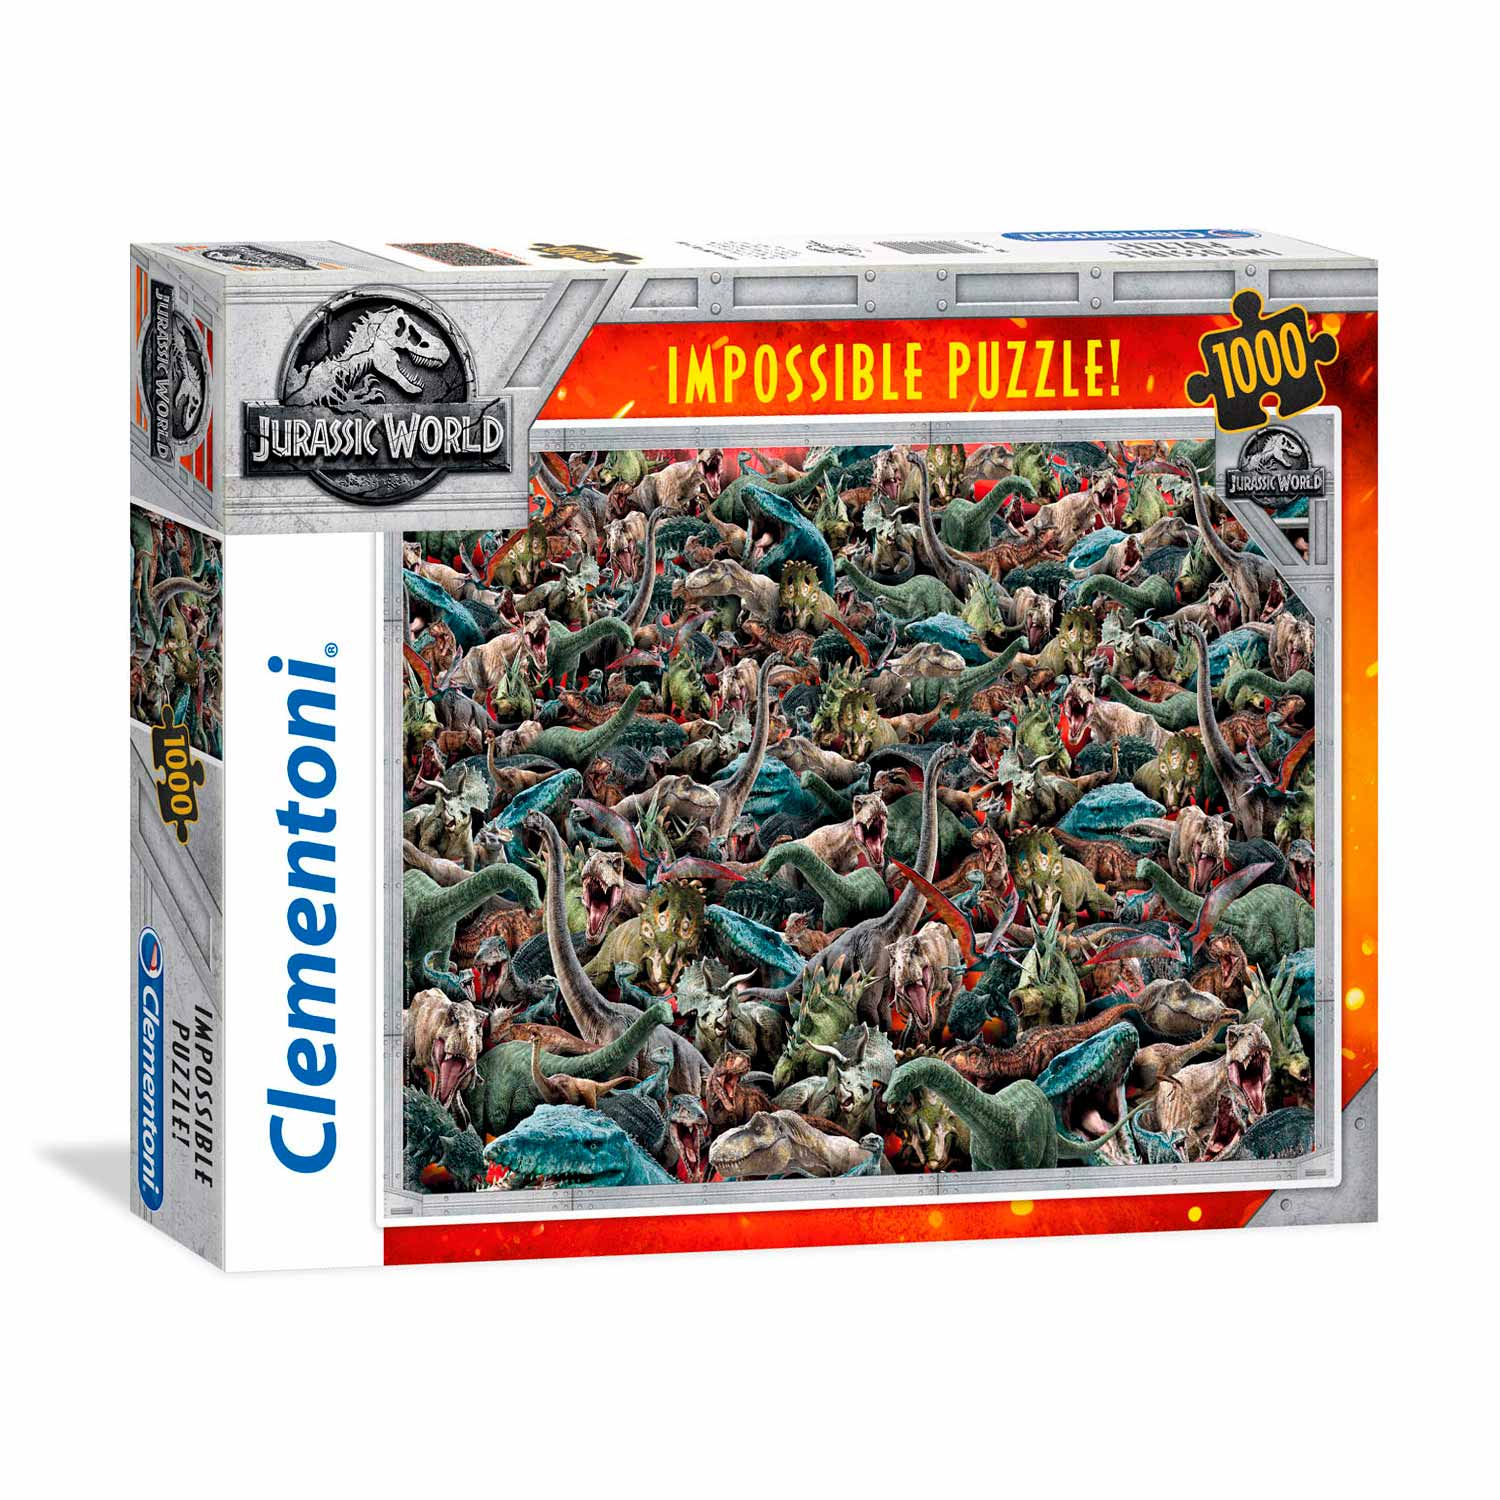 Clementoni Impossible Puzzel Jurassic World, 1000st.